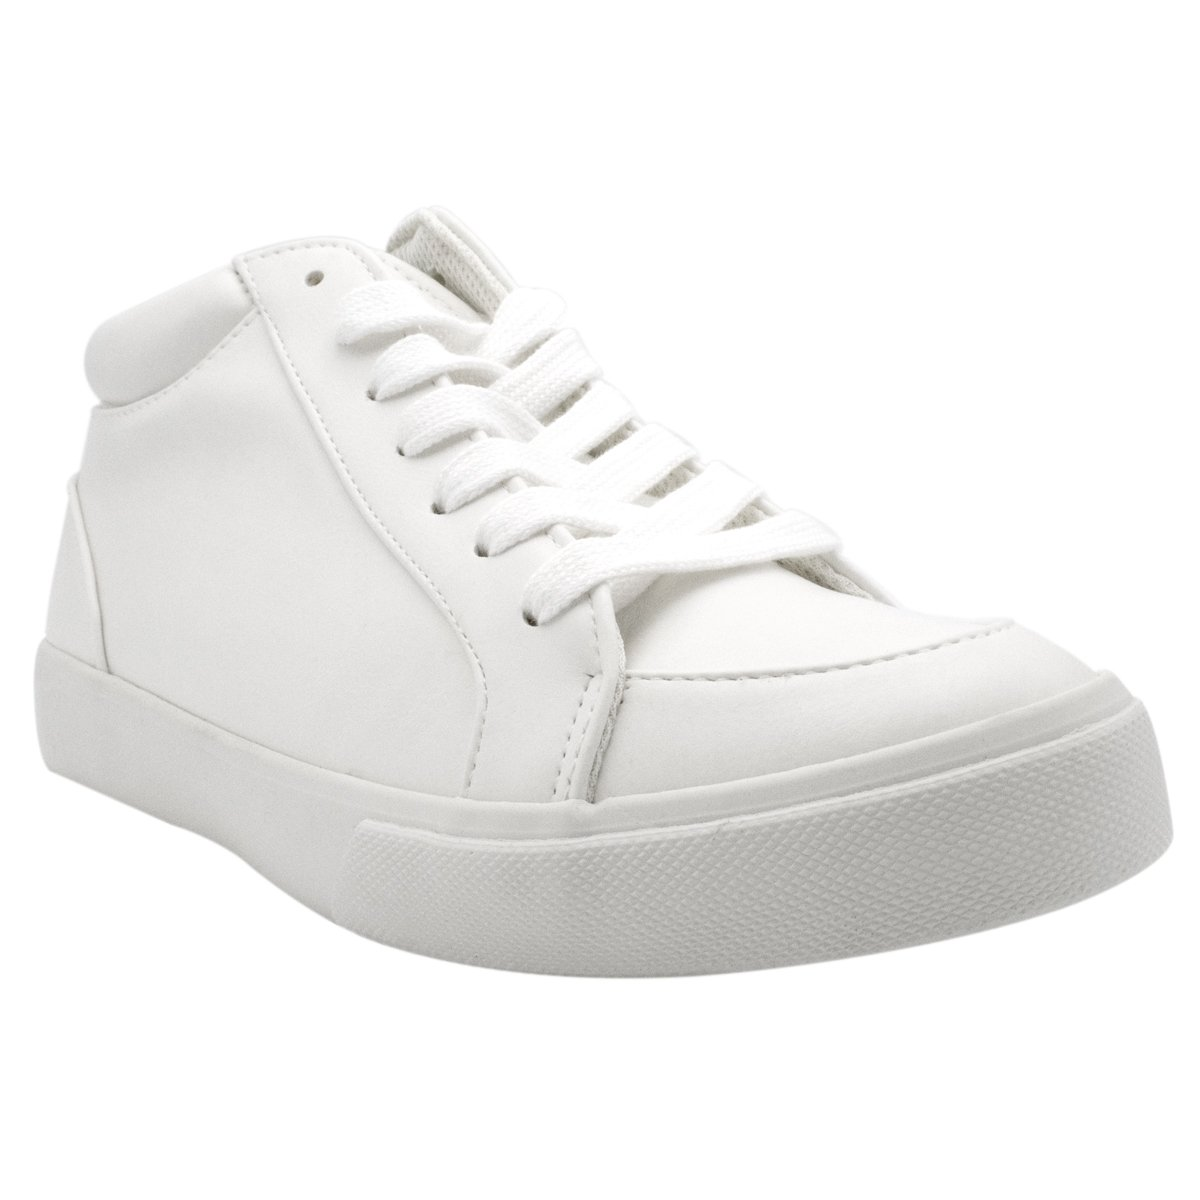 White Pu T Premier Standard Women's Casual Walking shoes - Easy Everyday Fashion Slip on